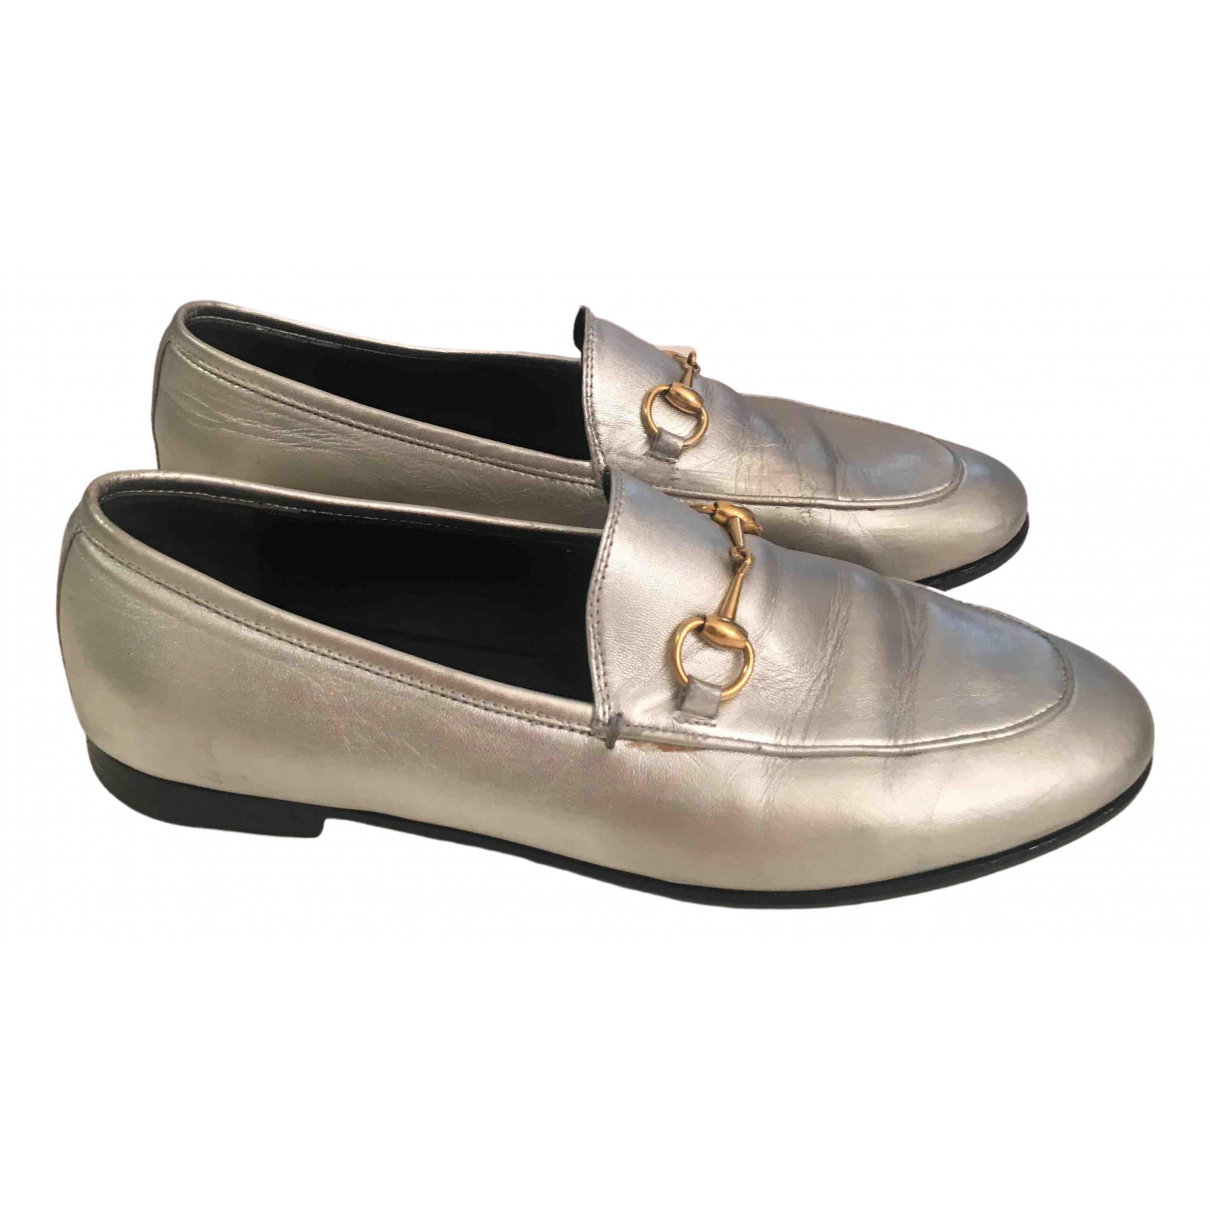 Gucci Jordaan Silver Leather Flats for Women 38 EU